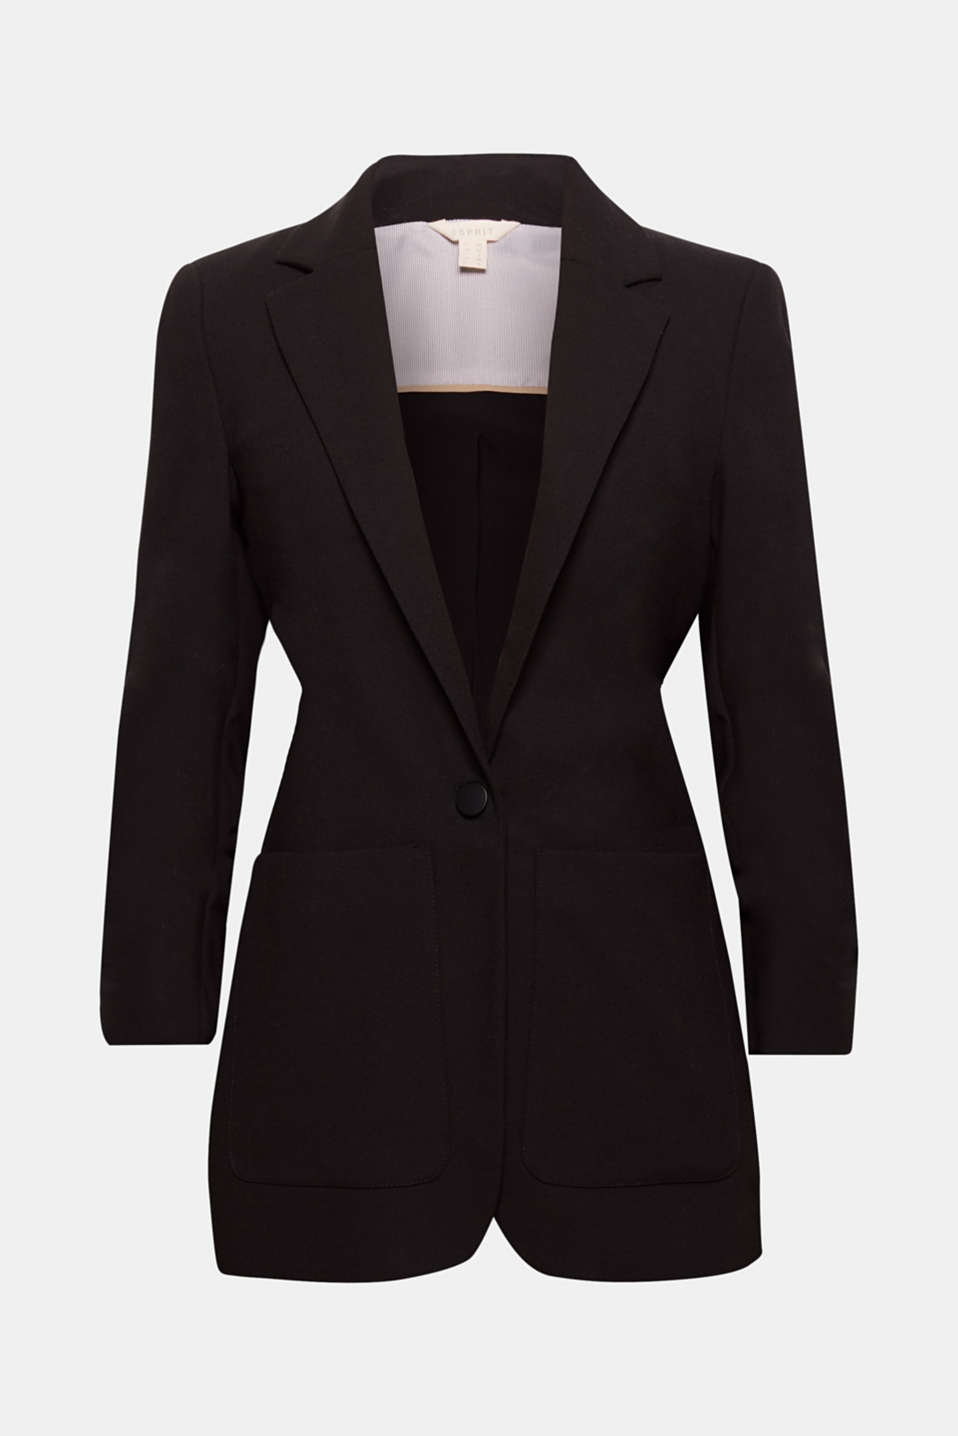 If you need to dress to impress, this is your cool piece: fitted one-button blazer in crêpe fabric with gathered sleeves and patch pockets!